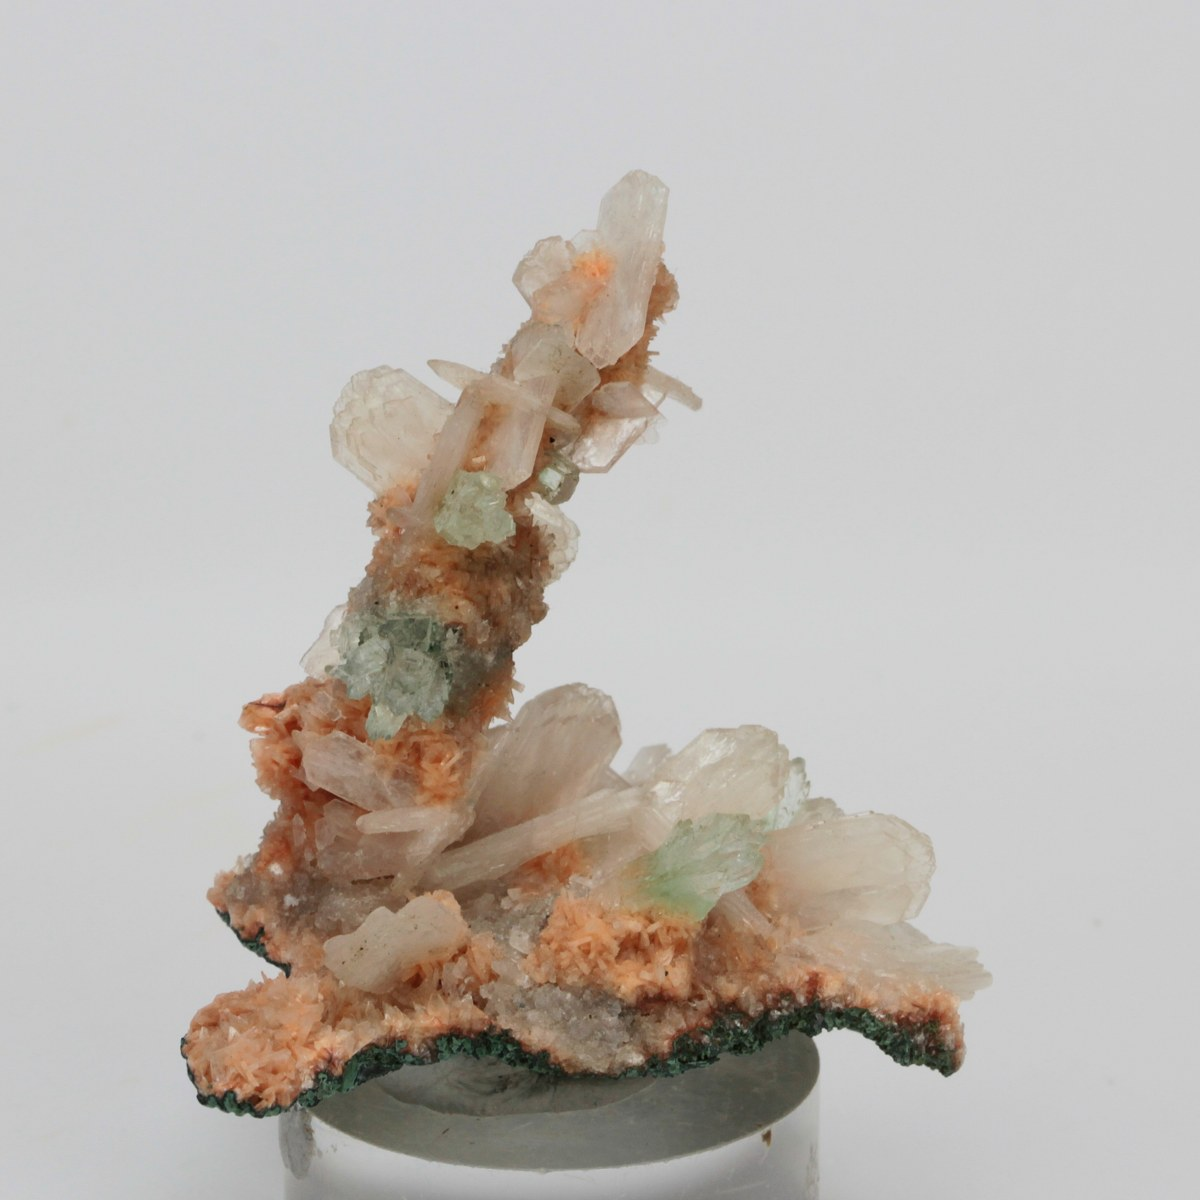 Apophyllite & Stilbite On Heulandite